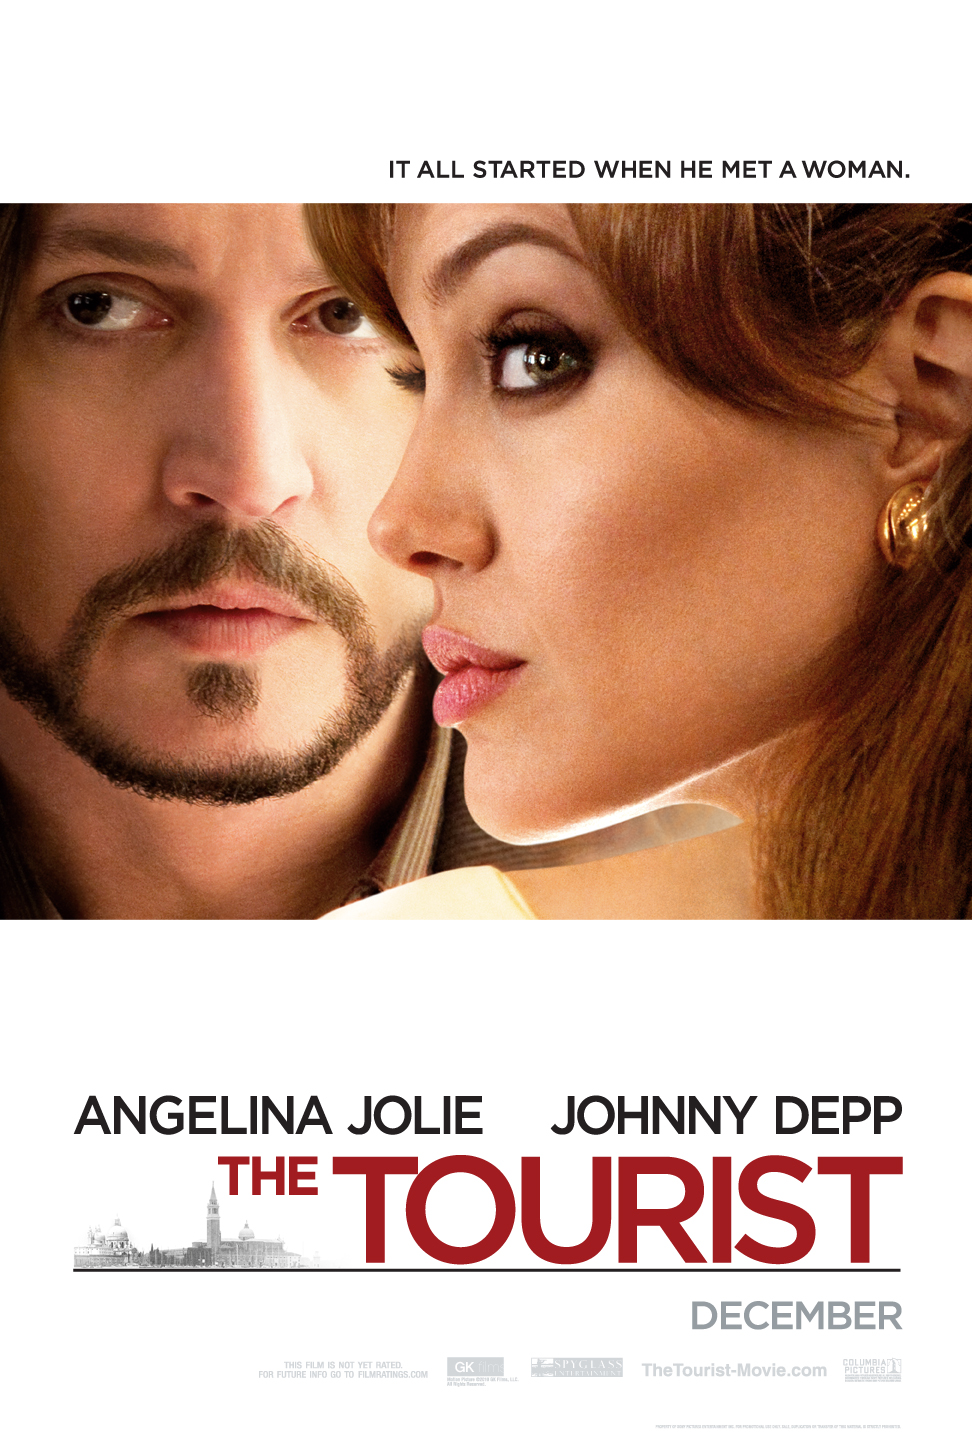 The-Tourist-movie-poster-angelina-jolie